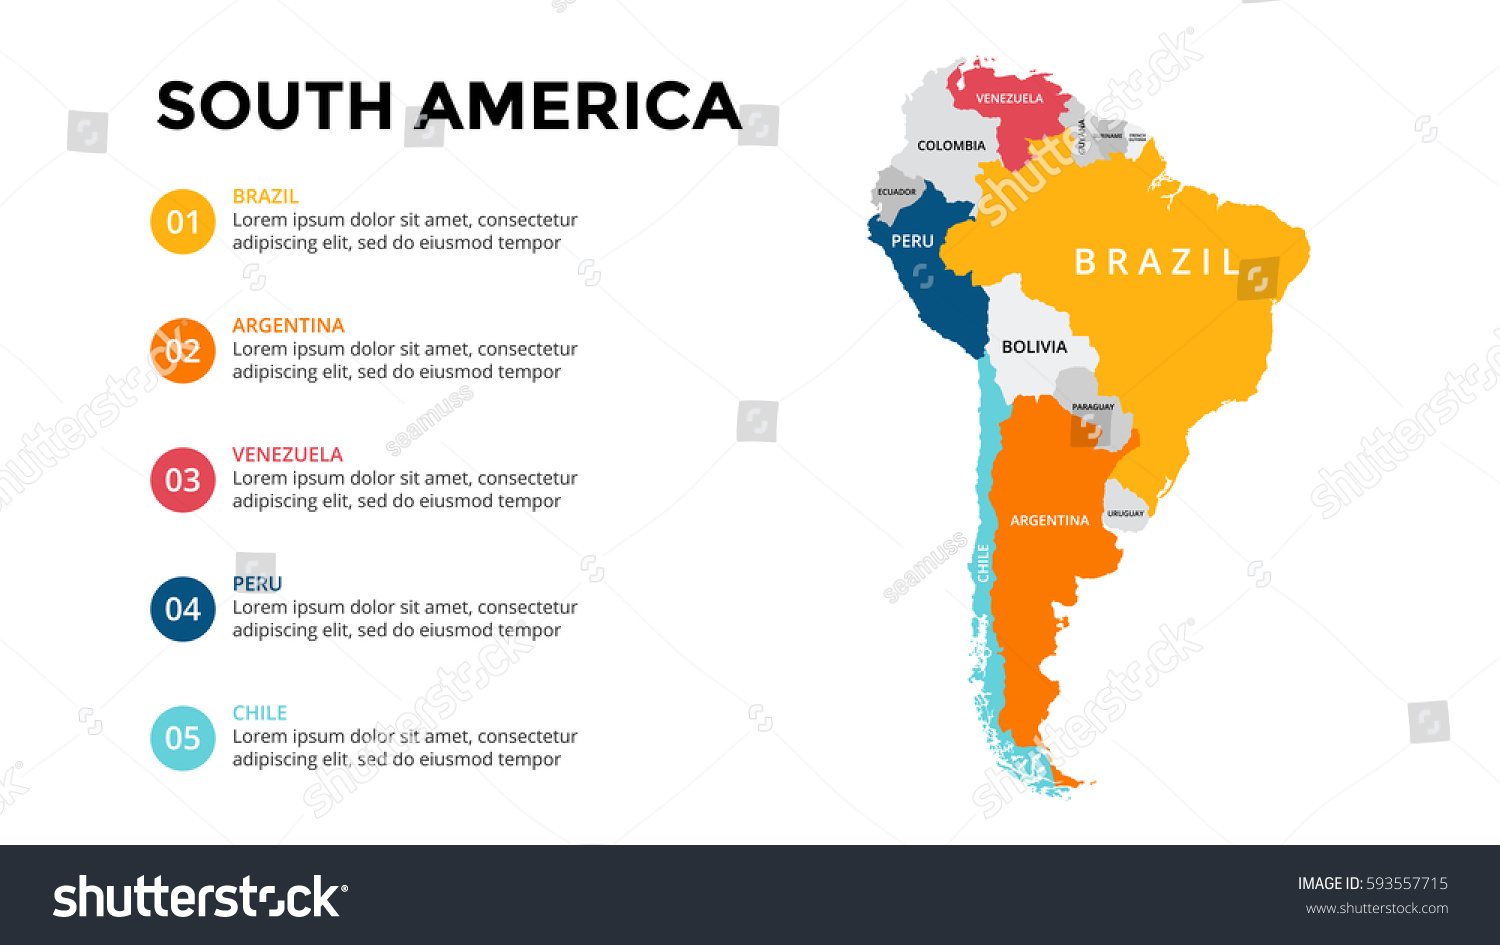 South america map infographic slide presentation stock for What color is south america